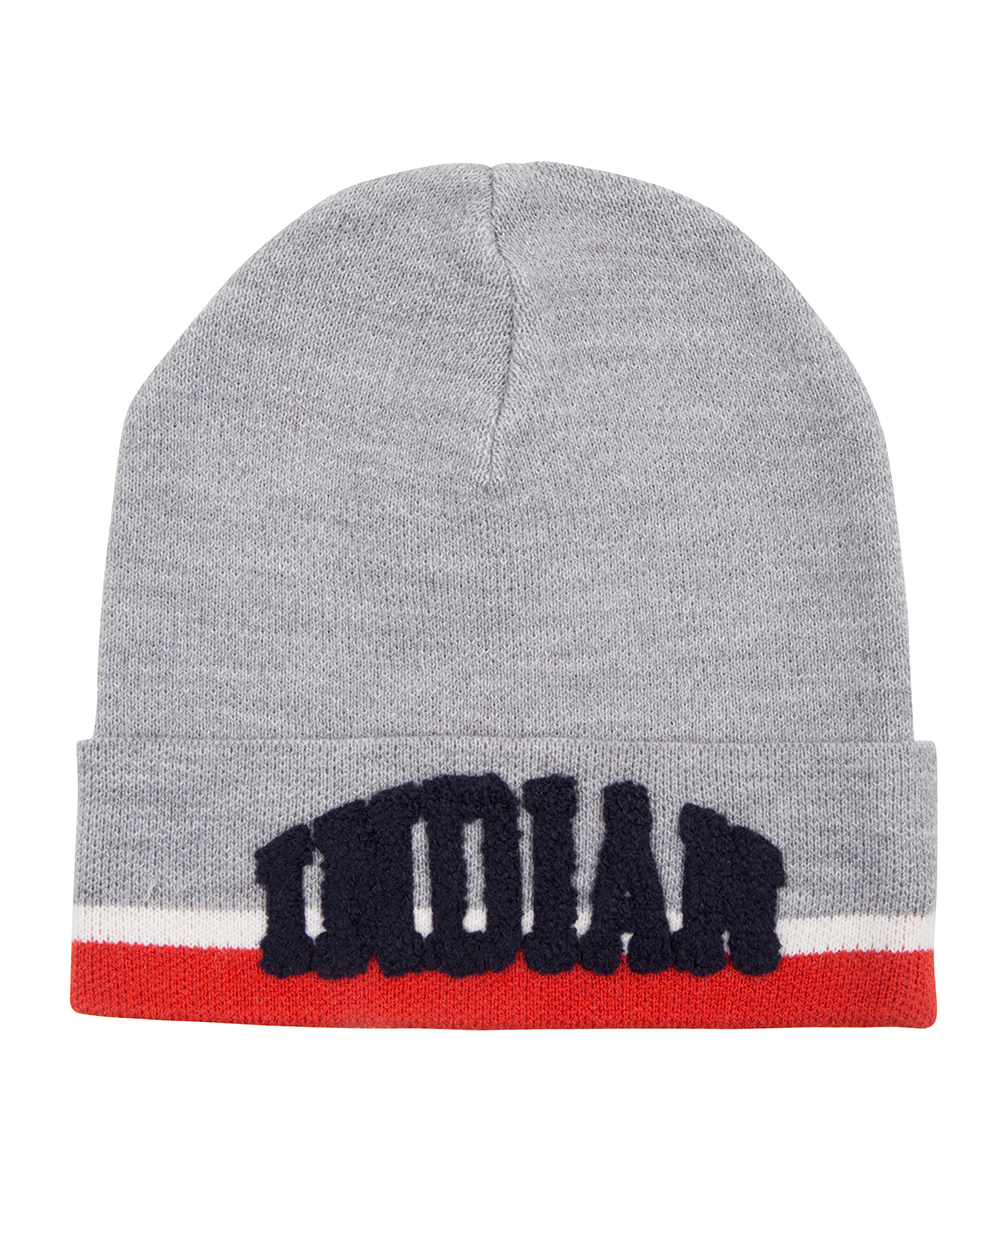 COOLSTES BEANIE MIT INDIAN APPLIKATION